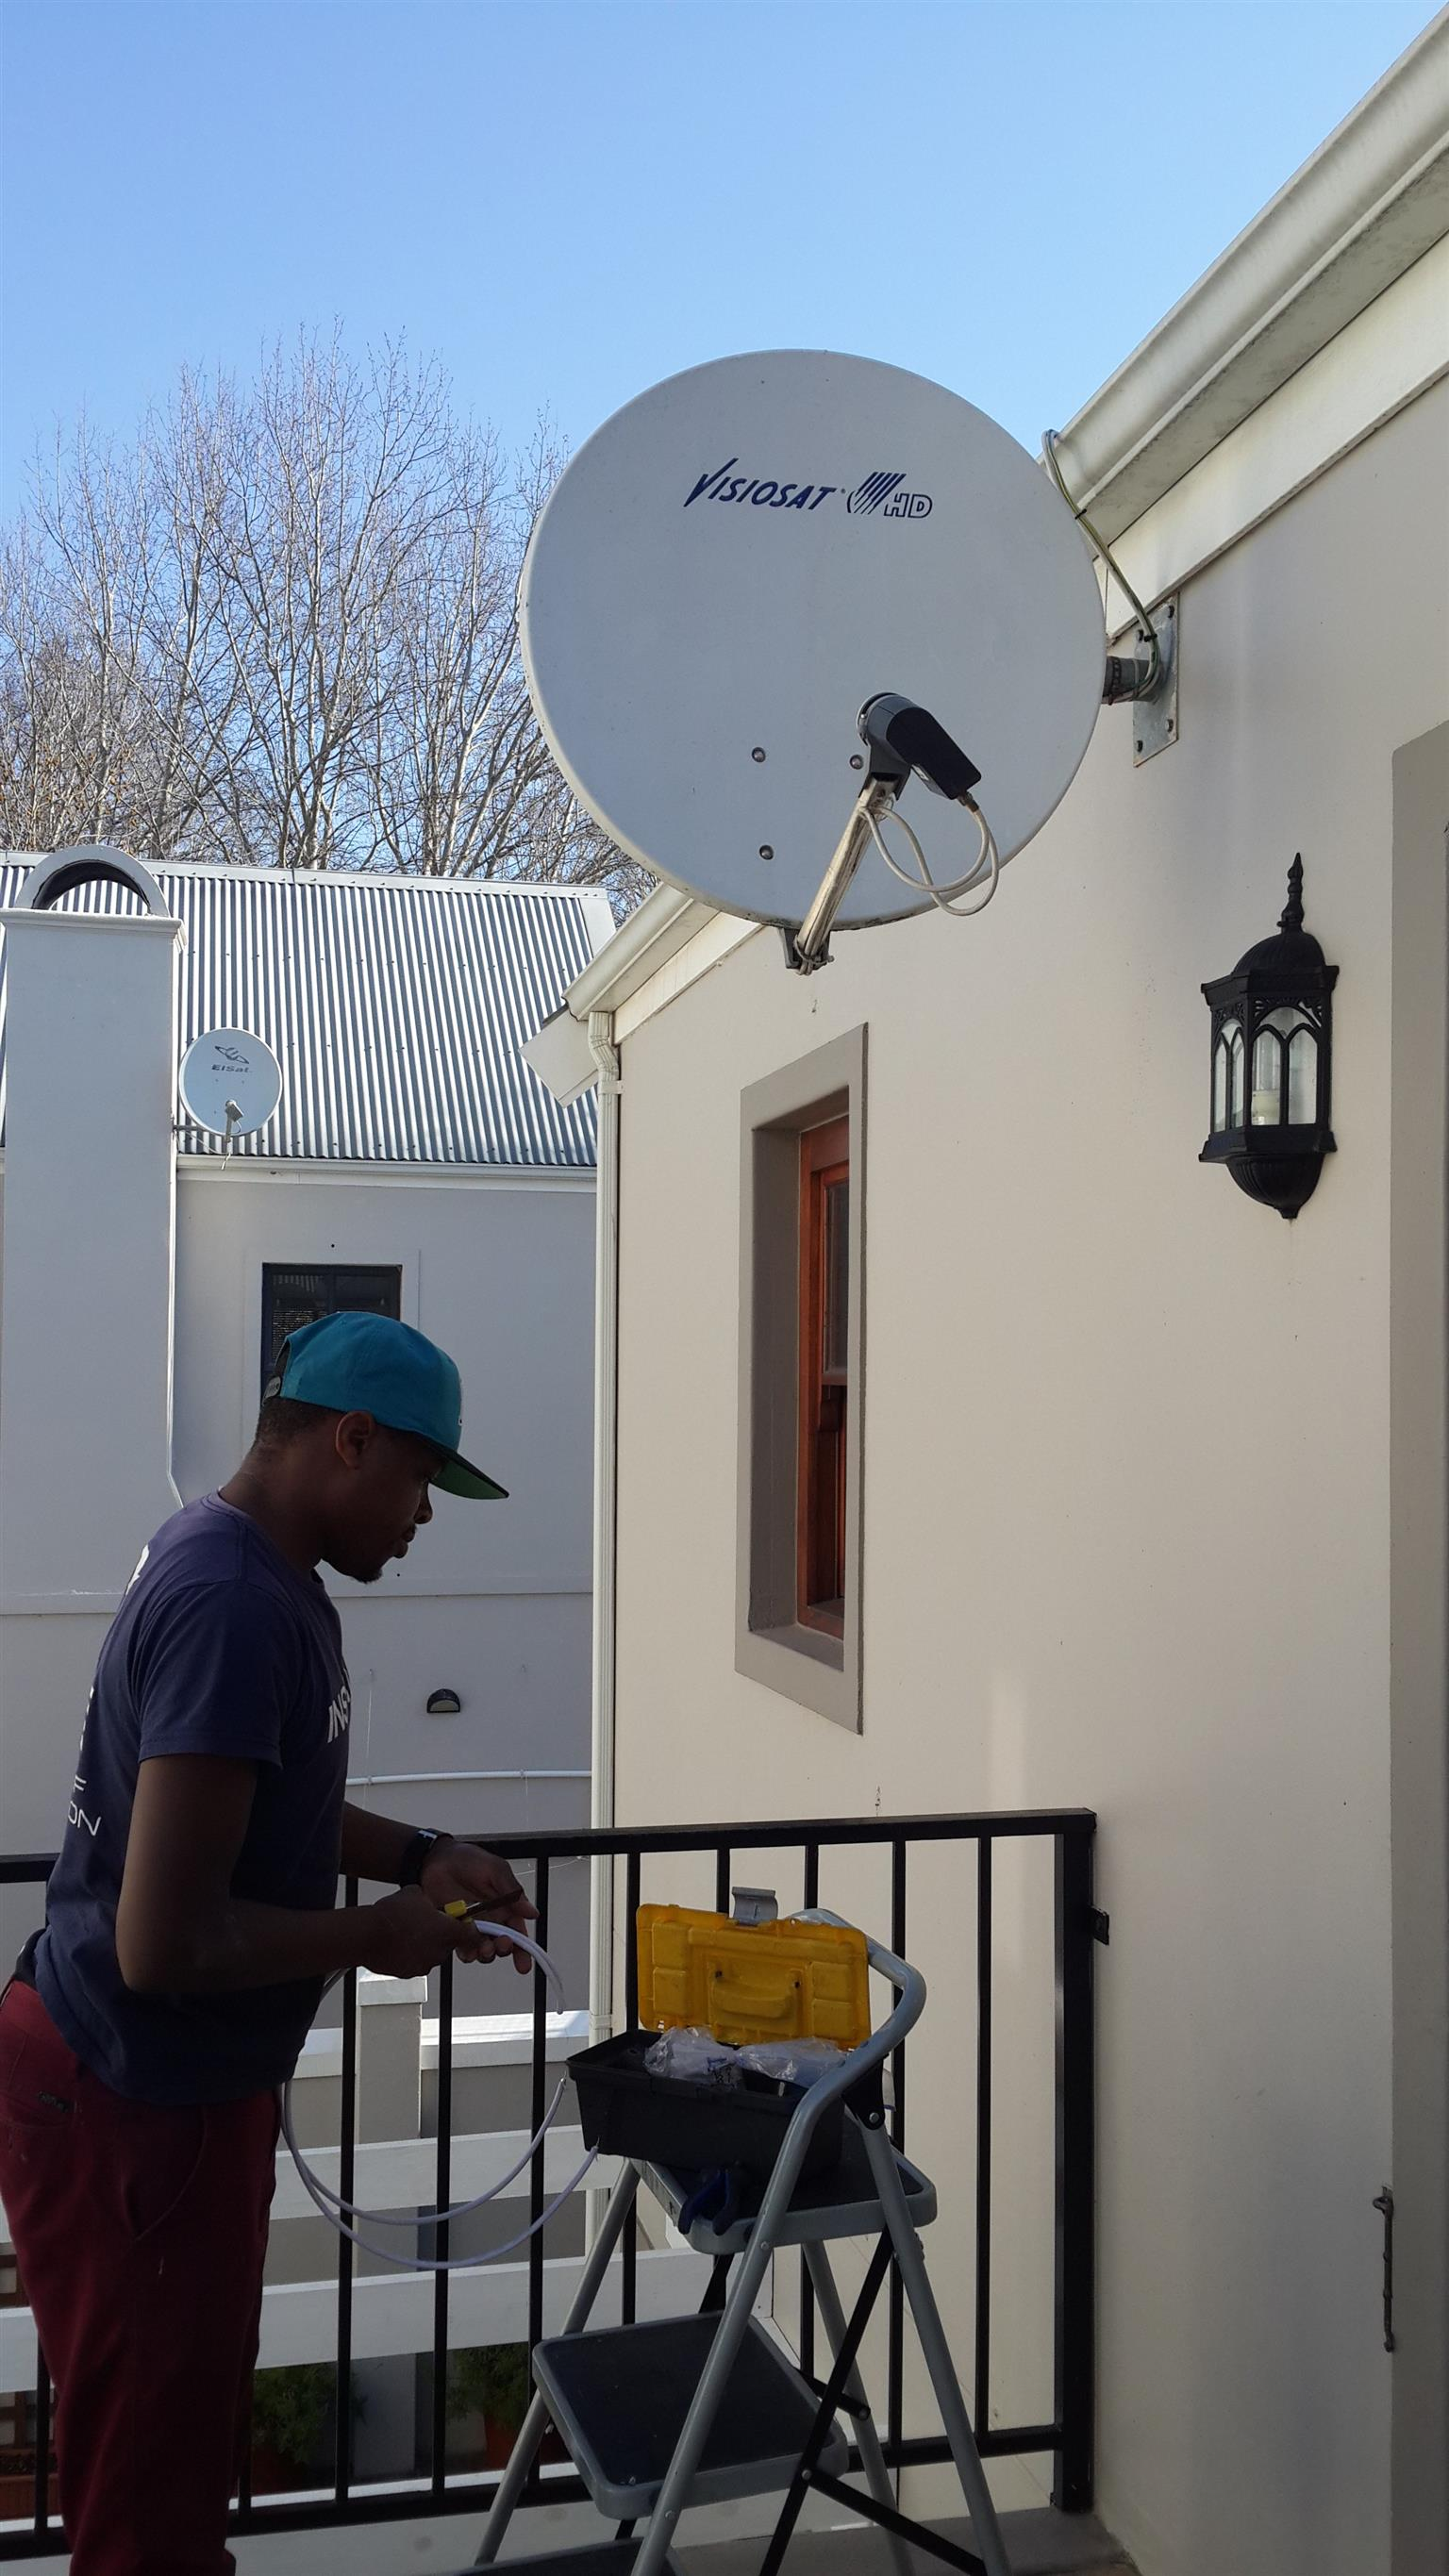 Dstv Explora installation and repairs Hout bay 0783085689